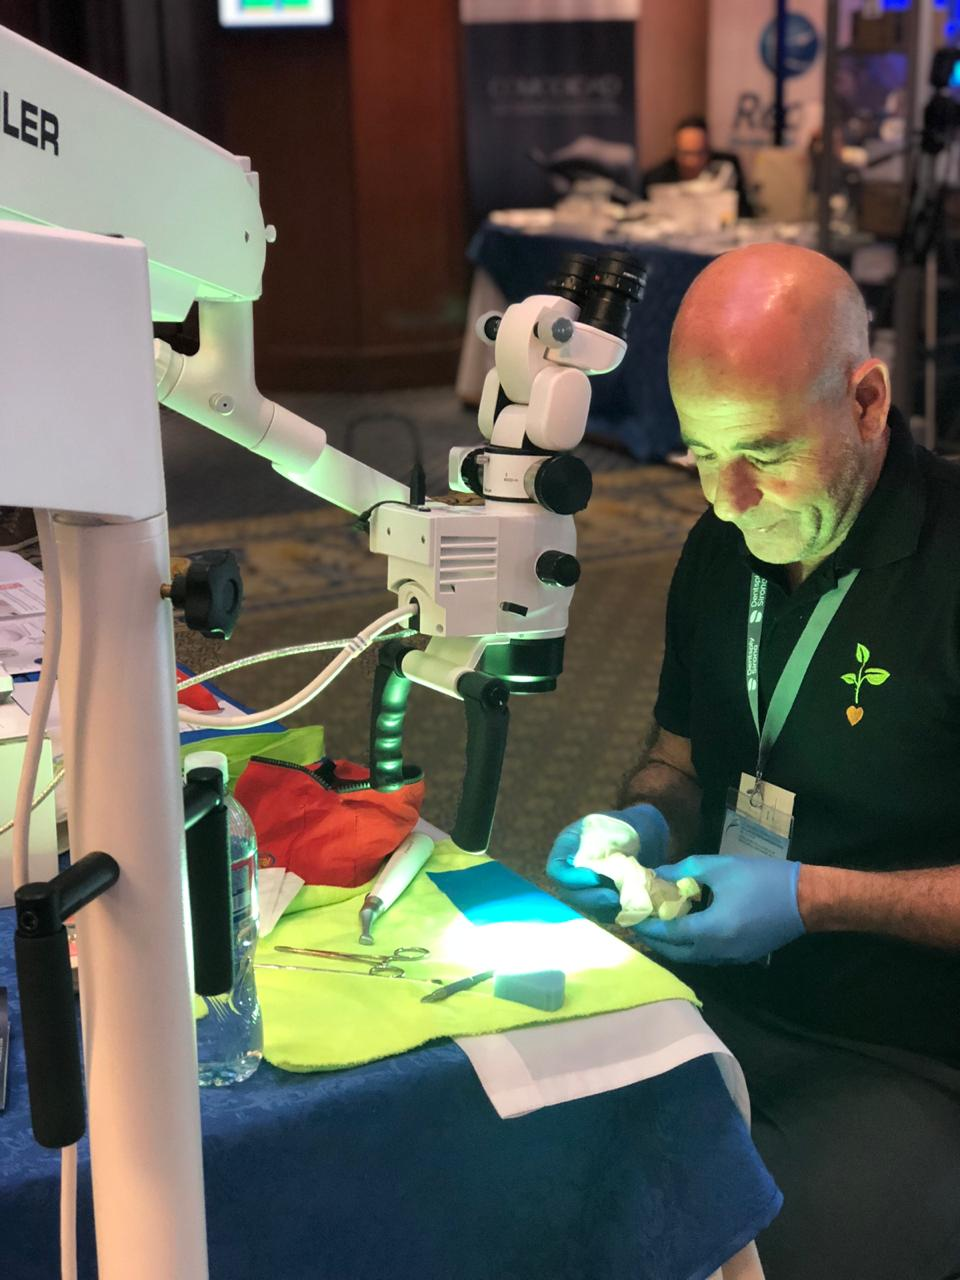 Dr. Sergio Rosler works in Seiler's booth using a microscope